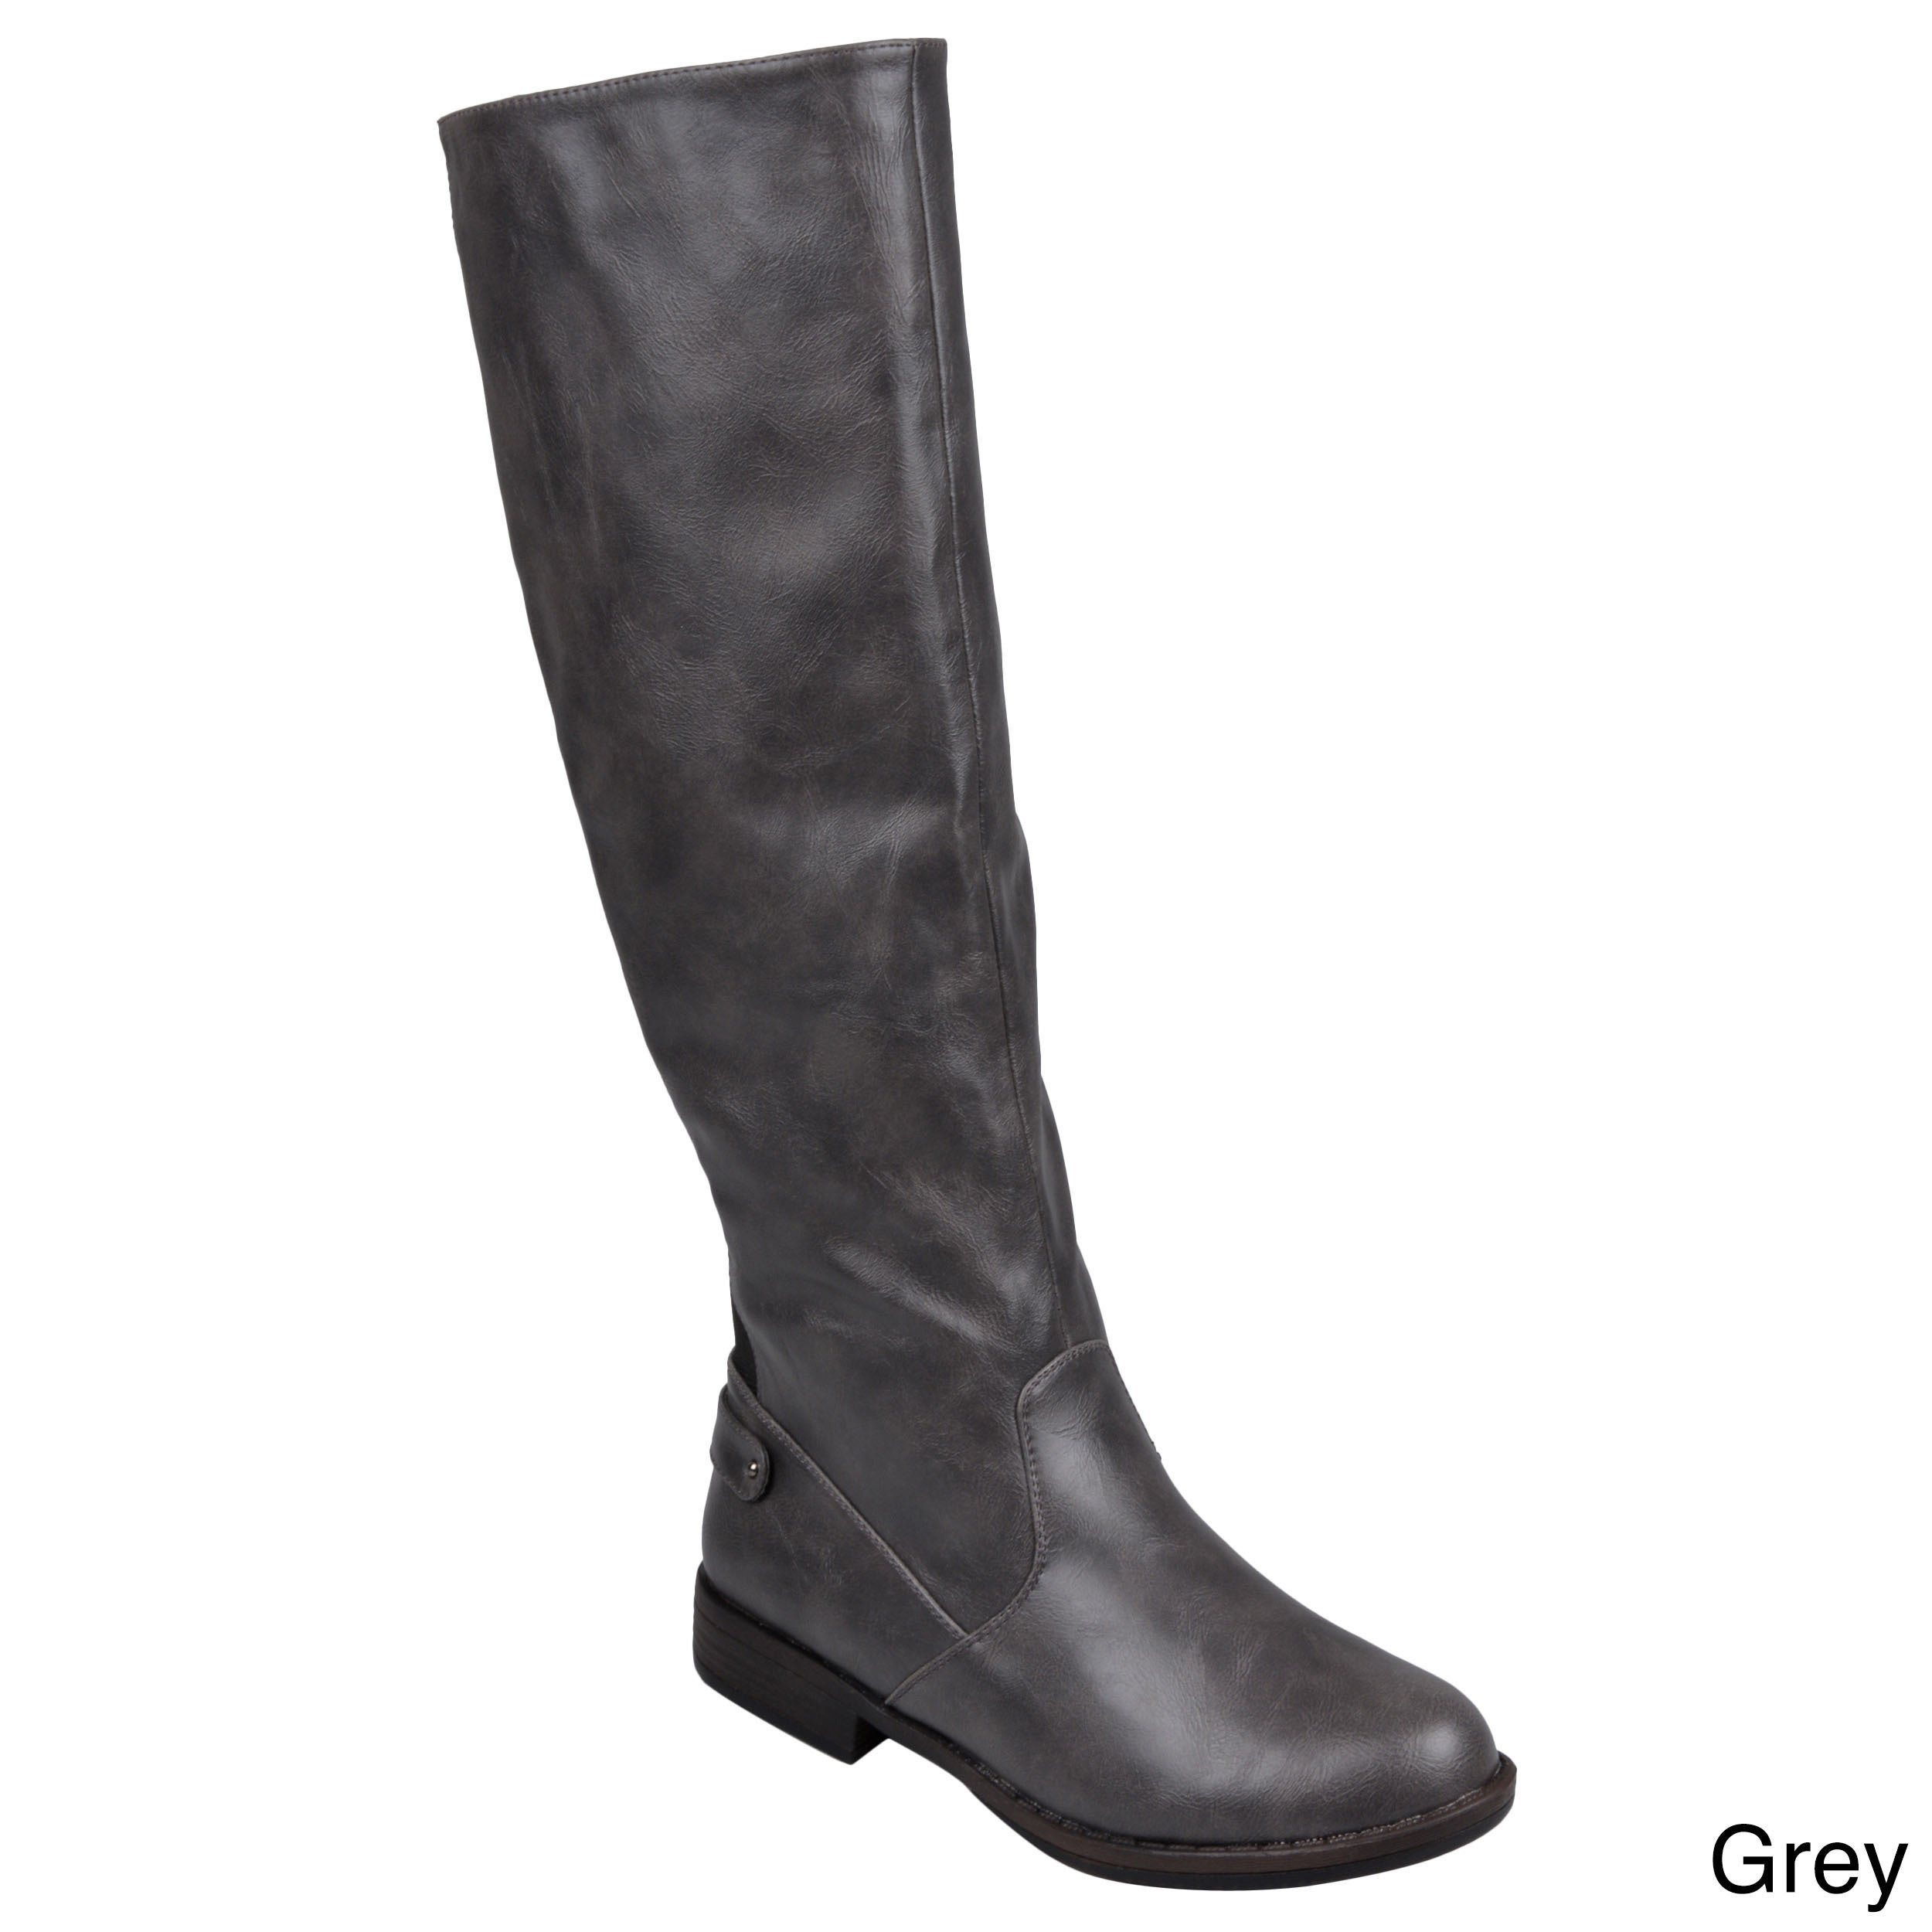 hot sale for sale low price fee shipping for sale Journee Collection Lynn ... Women's Tall Riding Boots cheap 2014 new largest supplier classic cheap online us8jkcG